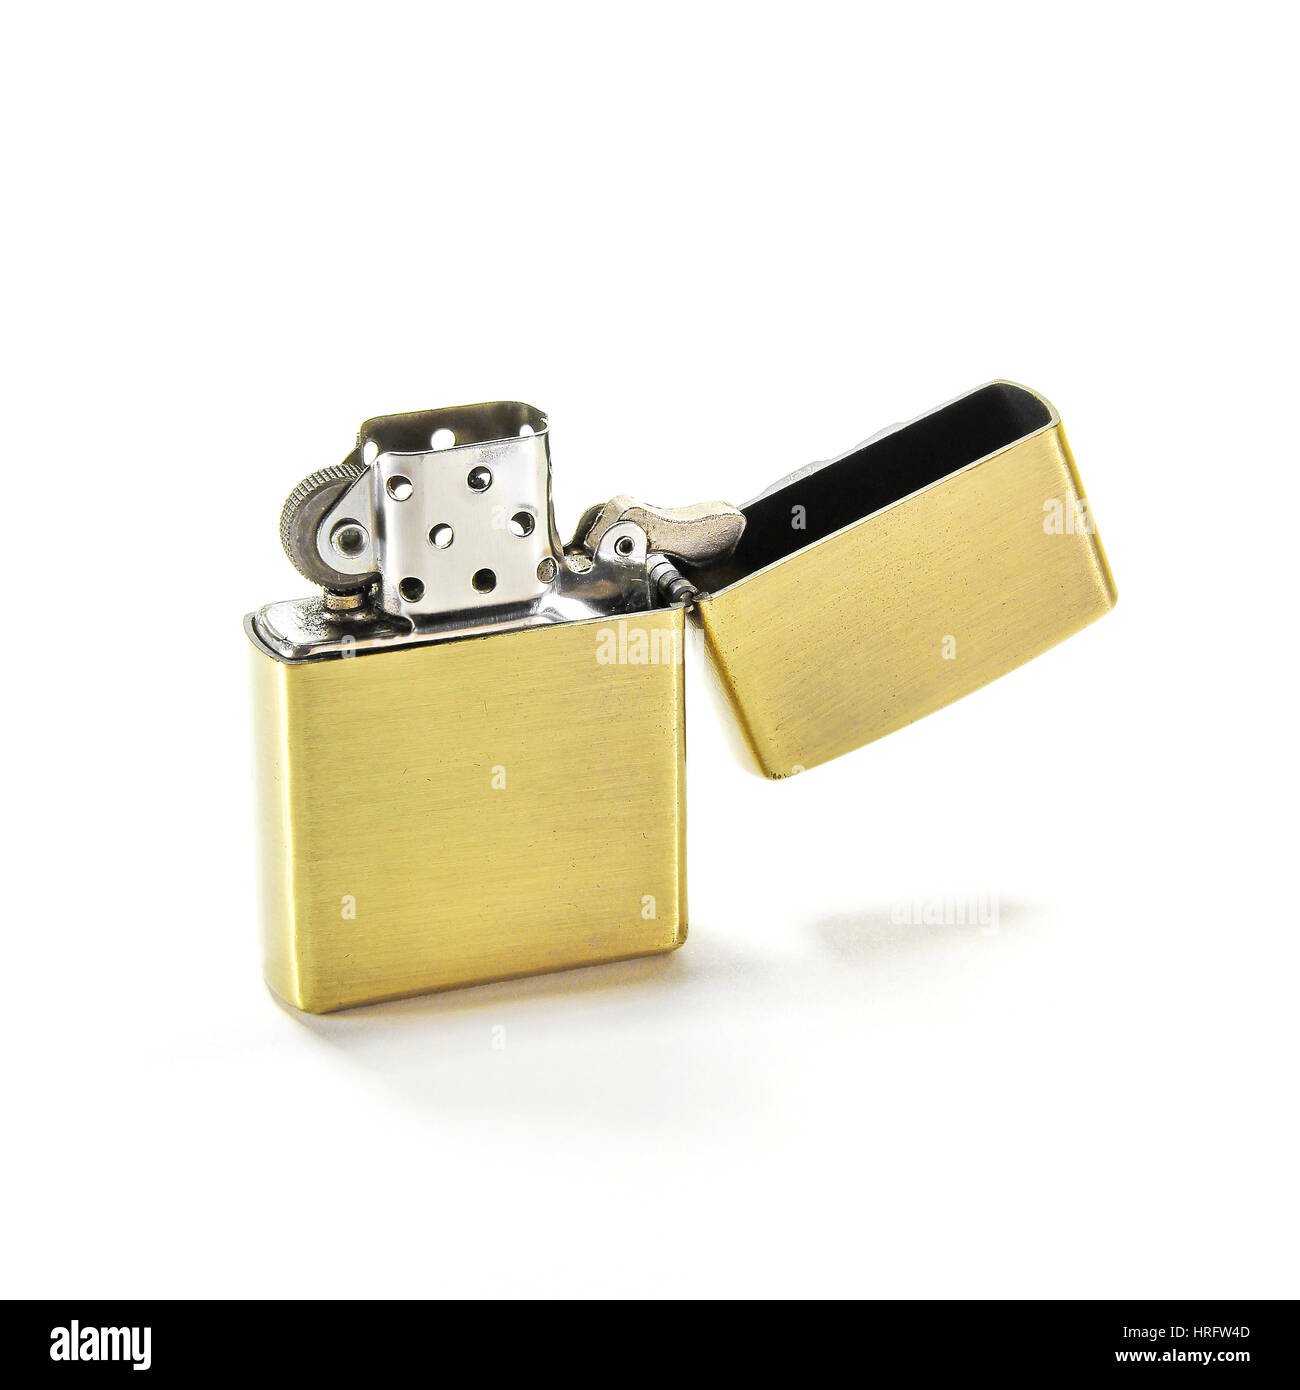 Closed Up Zippo Lighter Isolated on White Background - Stock Image